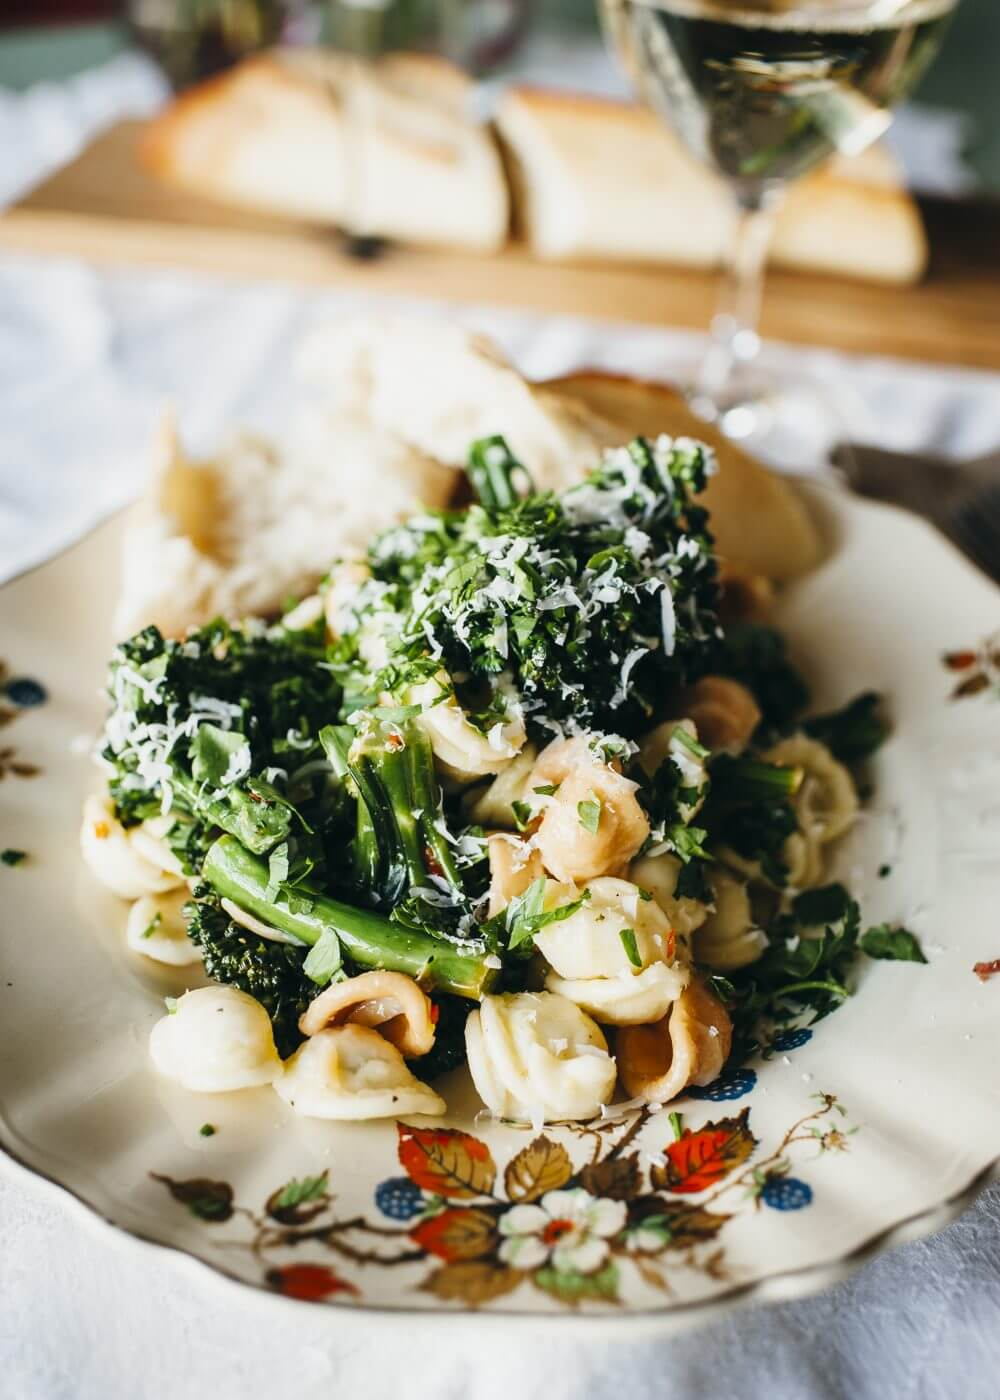 Incredible Vegetarian dishes – in the style of Ottolenghi